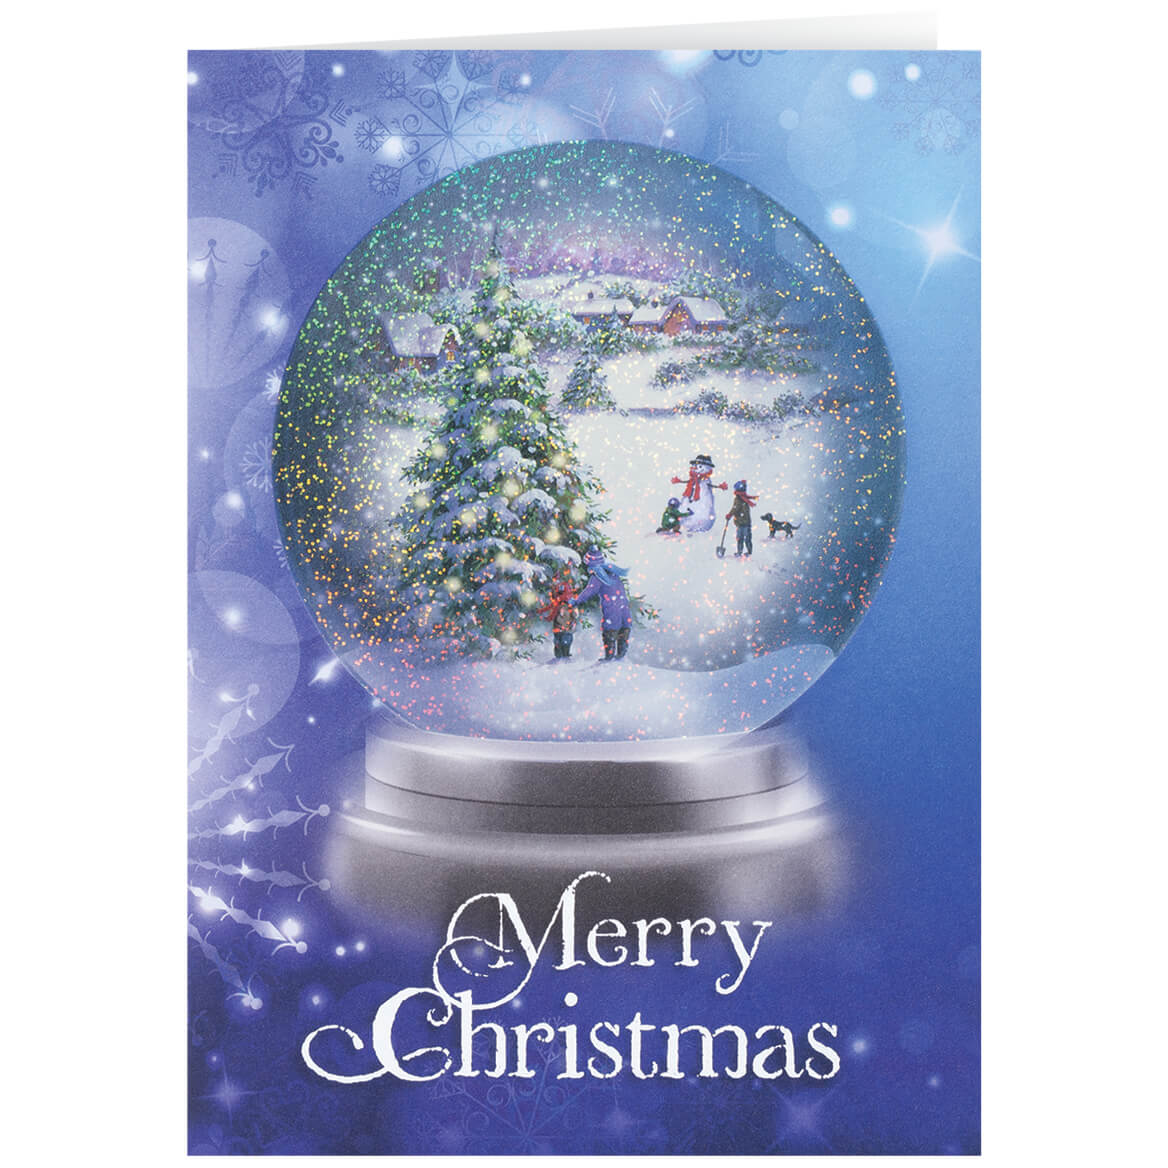 Personalized Winter Snowglobe Christmas Card Set of 20